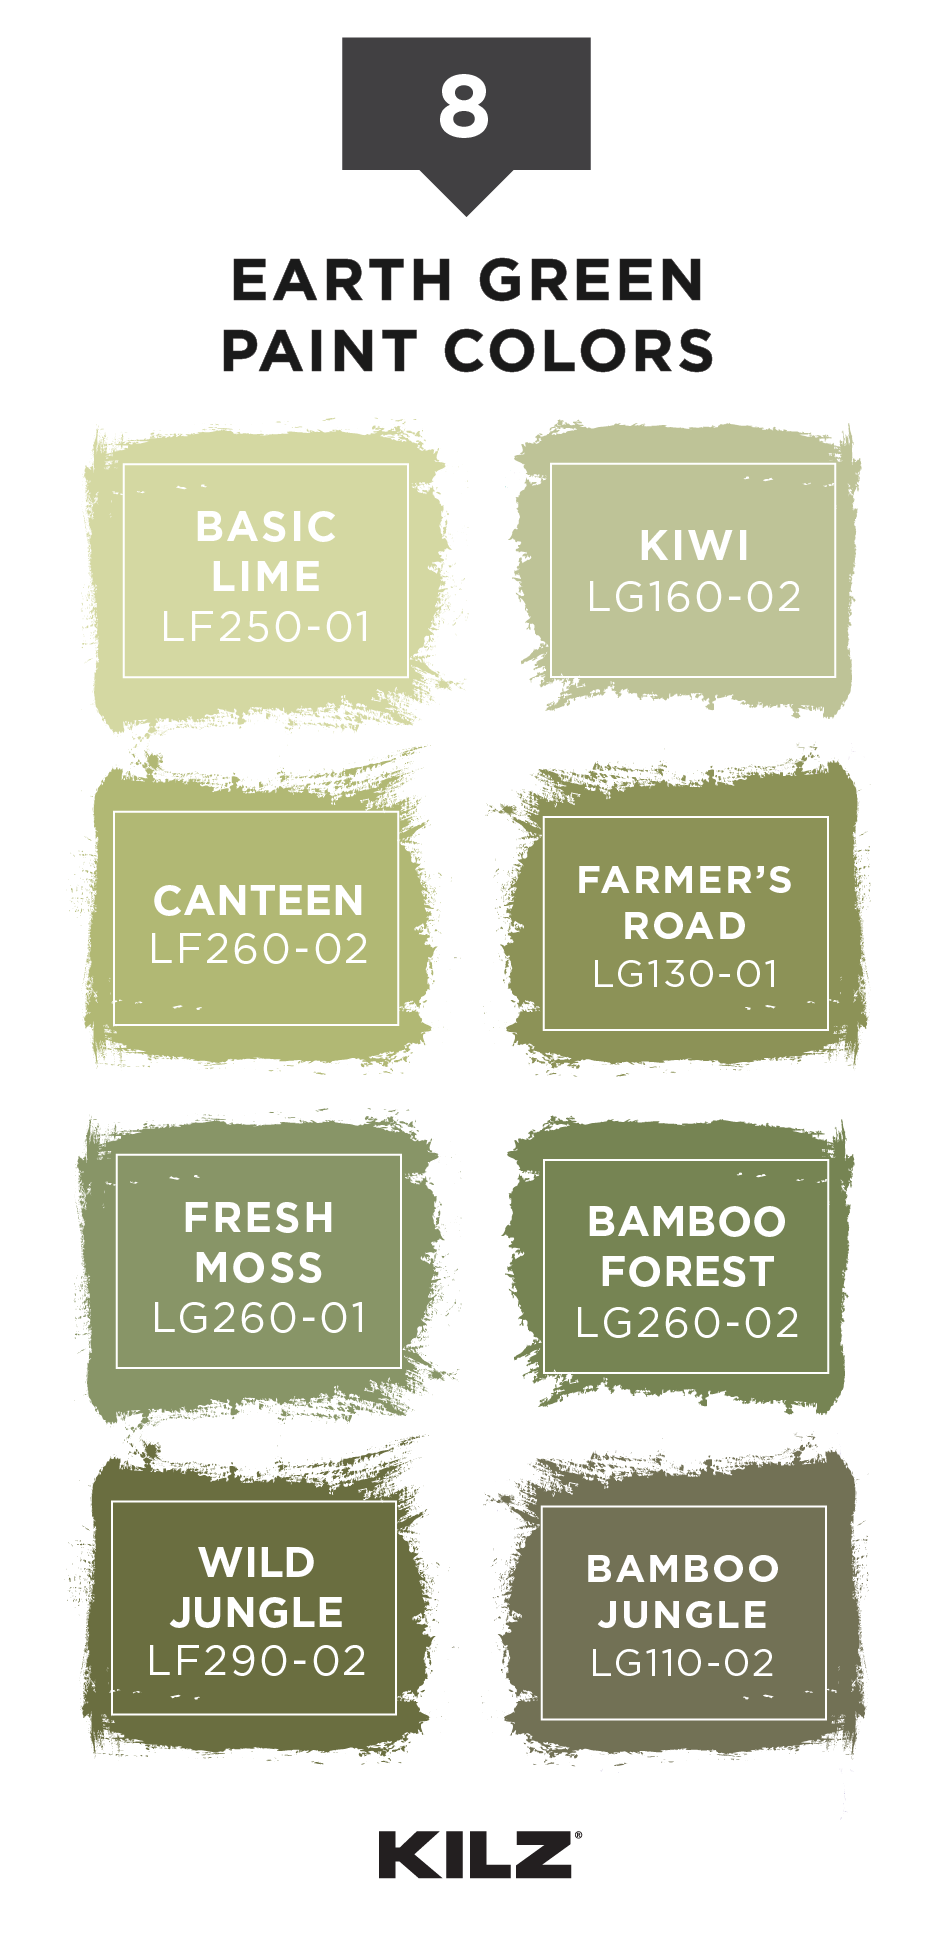 Add A Pop Of Earth Green Color To Your Home With This Paint Palette From